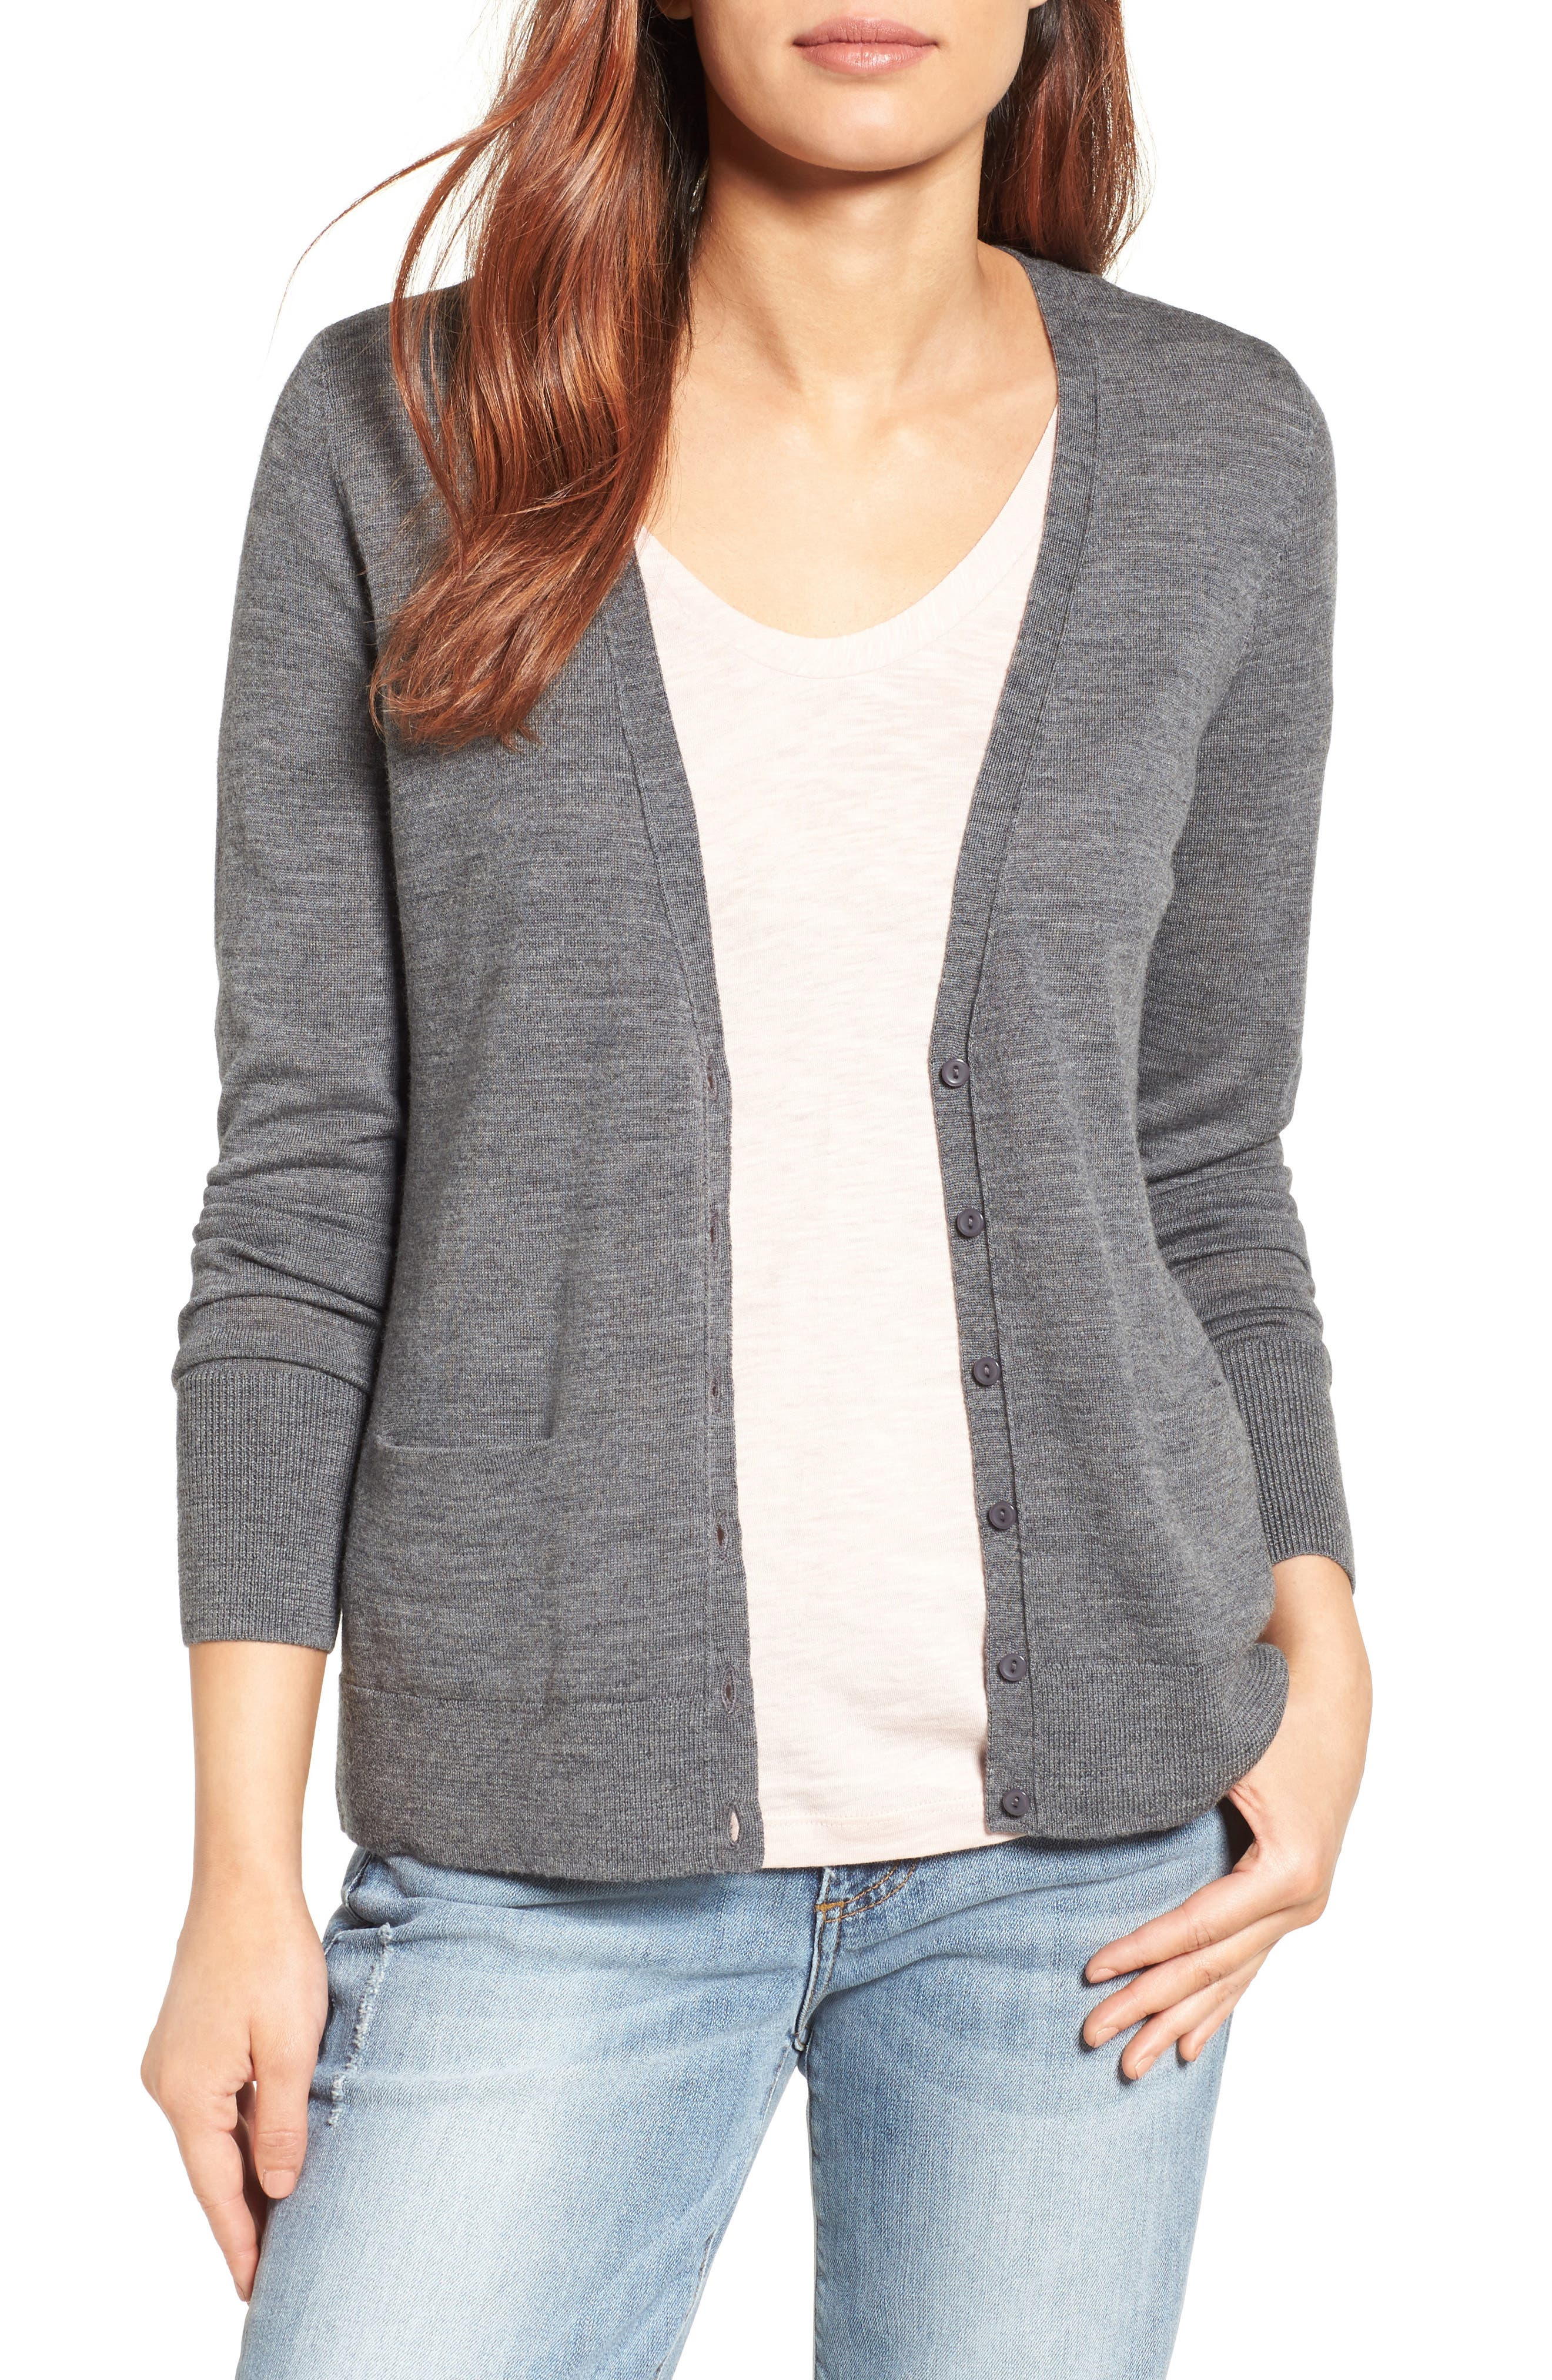 Main Image - Halogen® V-Neck Merino Wool Cardigan (Regular & Petite)